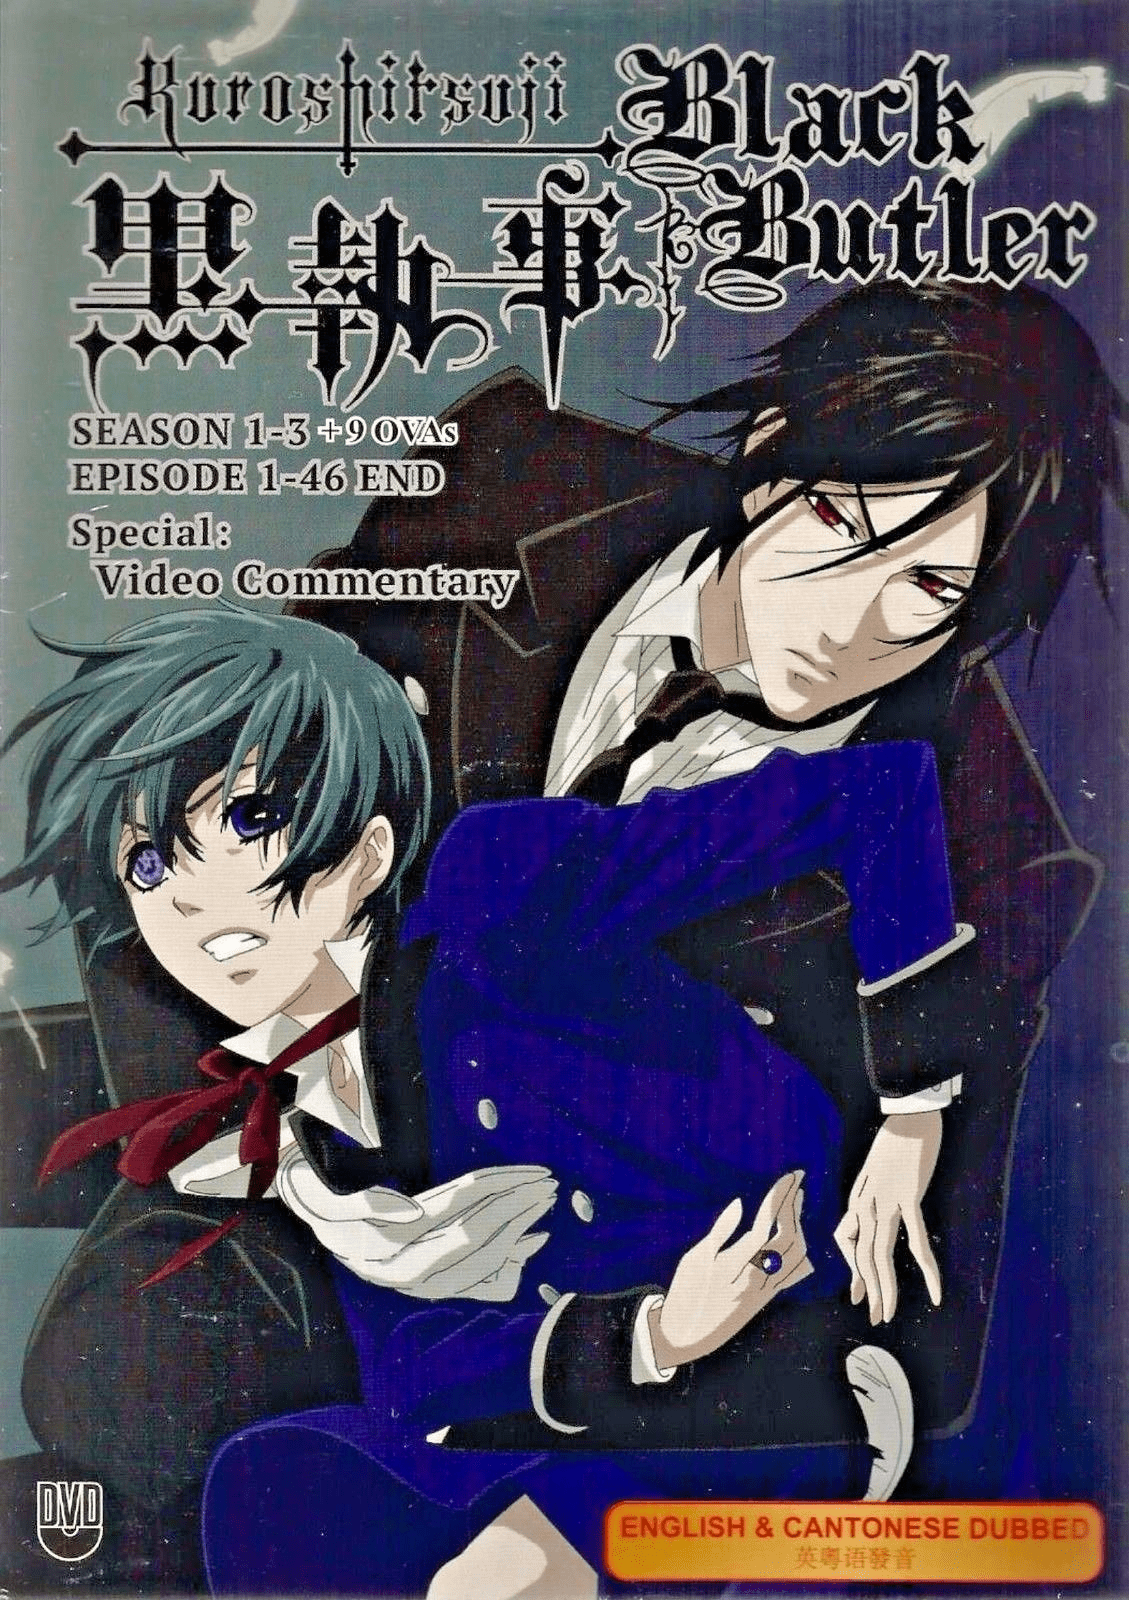 Black Butler Kuroshitsuji Complete Season 1 - 3 + 9 OVAs English Dub